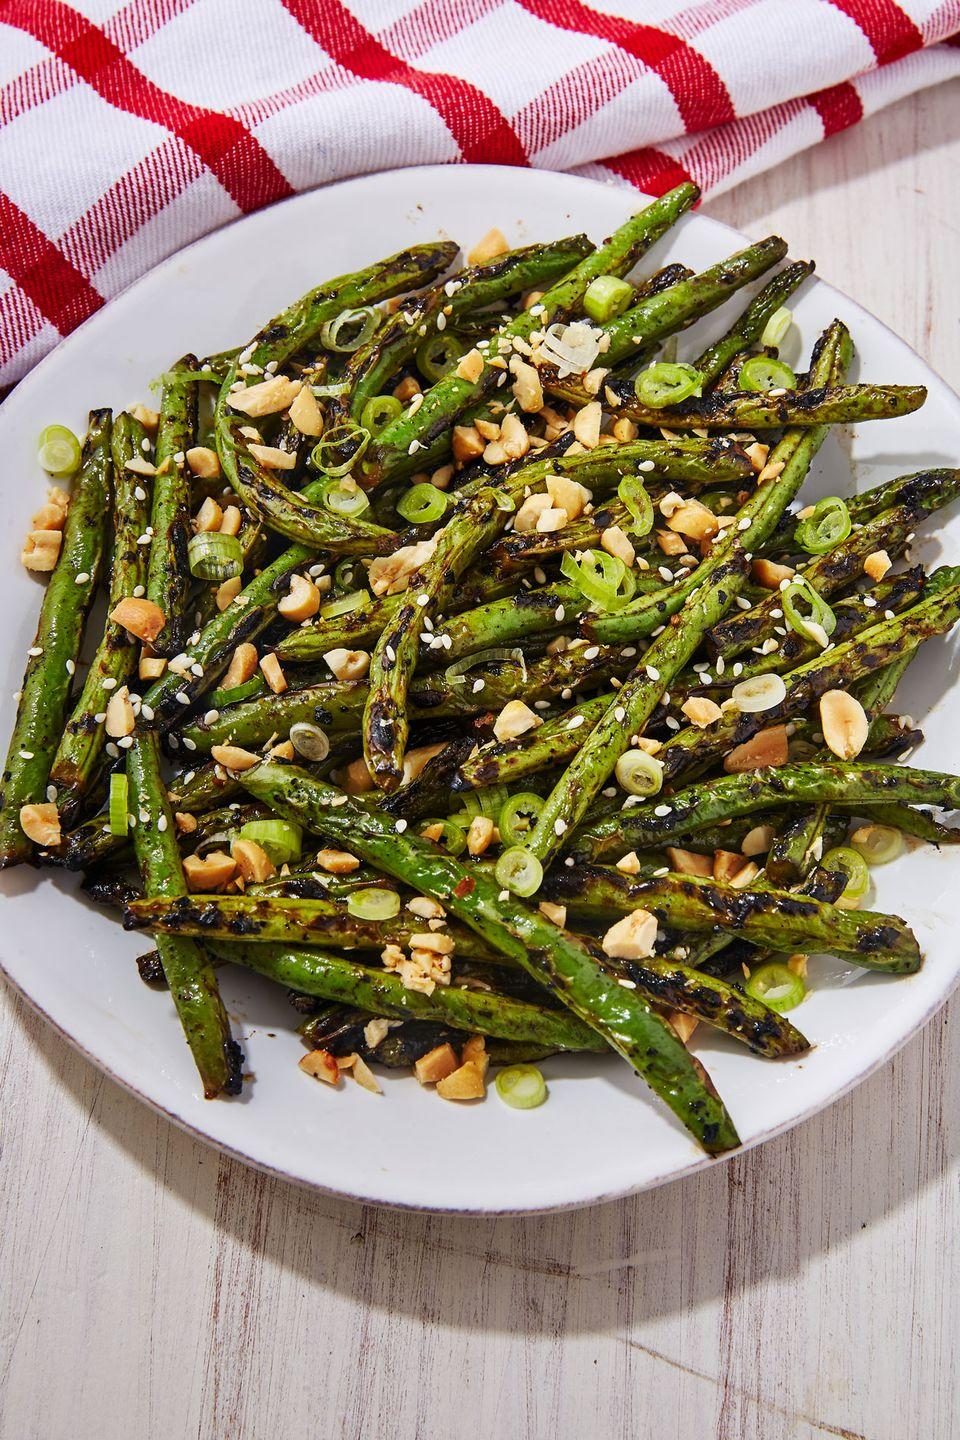 """<p>Very <span class=""""redactor-unlink"""">underrated!</span></p><p>Get the recipe from <a href=""""https://www.delish.com/cooking/recipe-ideas/a22243865/grilled-green-beans-recipe/"""" rel=""""nofollow noopener"""" target=""""_blank"""" data-ylk=""""slk:Delish"""" class=""""link rapid-noclick-resp"""">Delish</a>.</p>"""